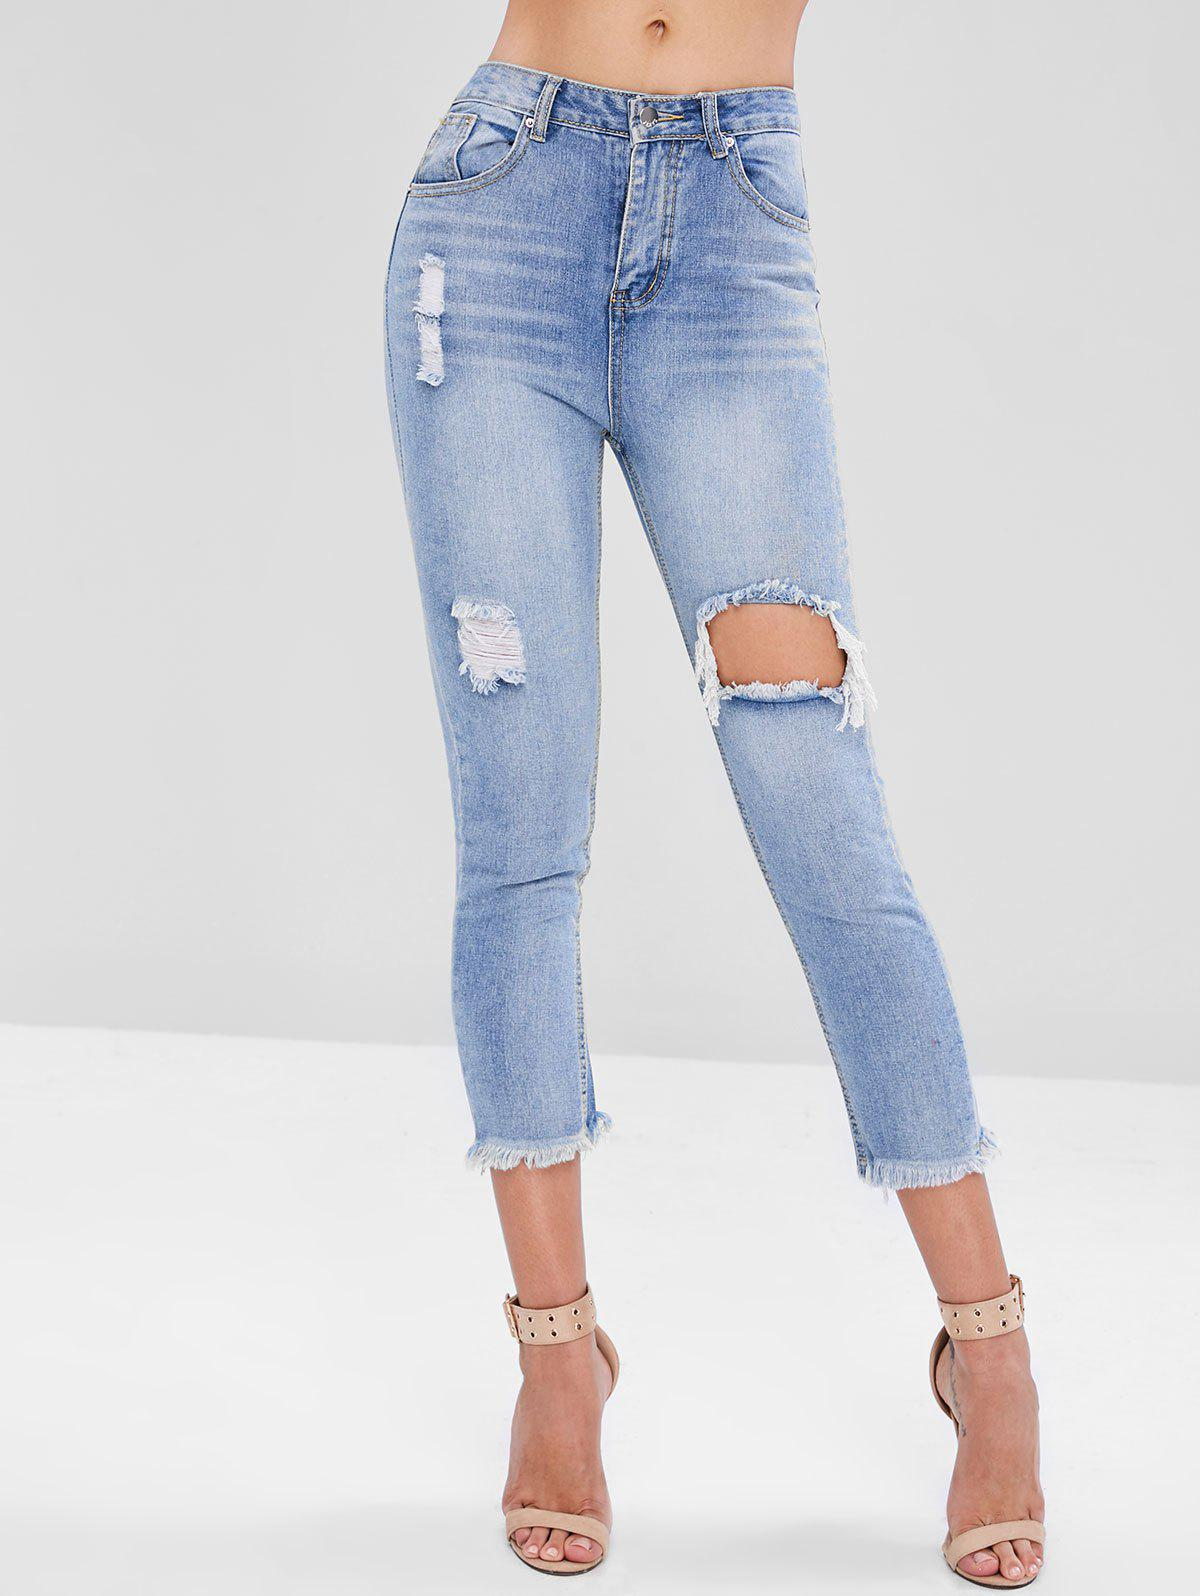 Ripped Cut Out Jeans 275284903